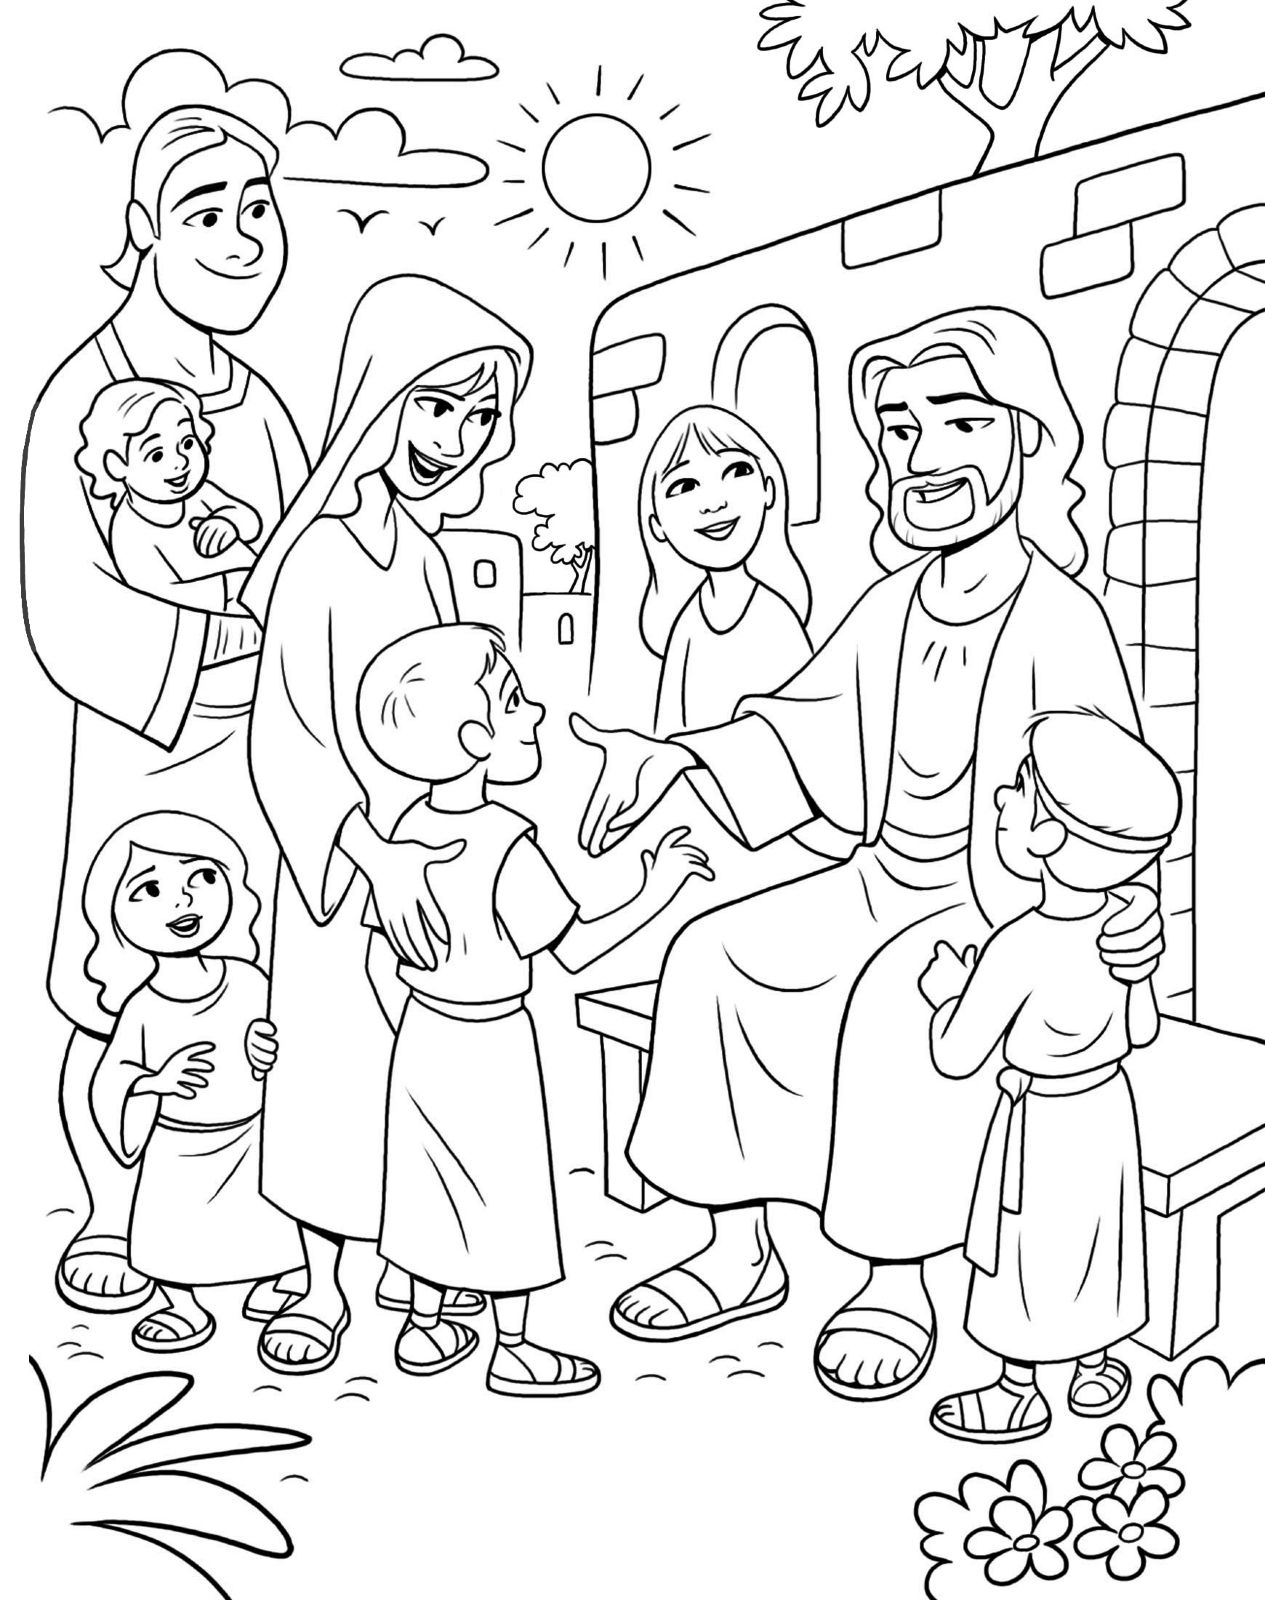 Pin By Angela Slaughter On Preschool Frogs Jesus Coloring Pages Sunday School Coloring Pages Lds Coloring Pages